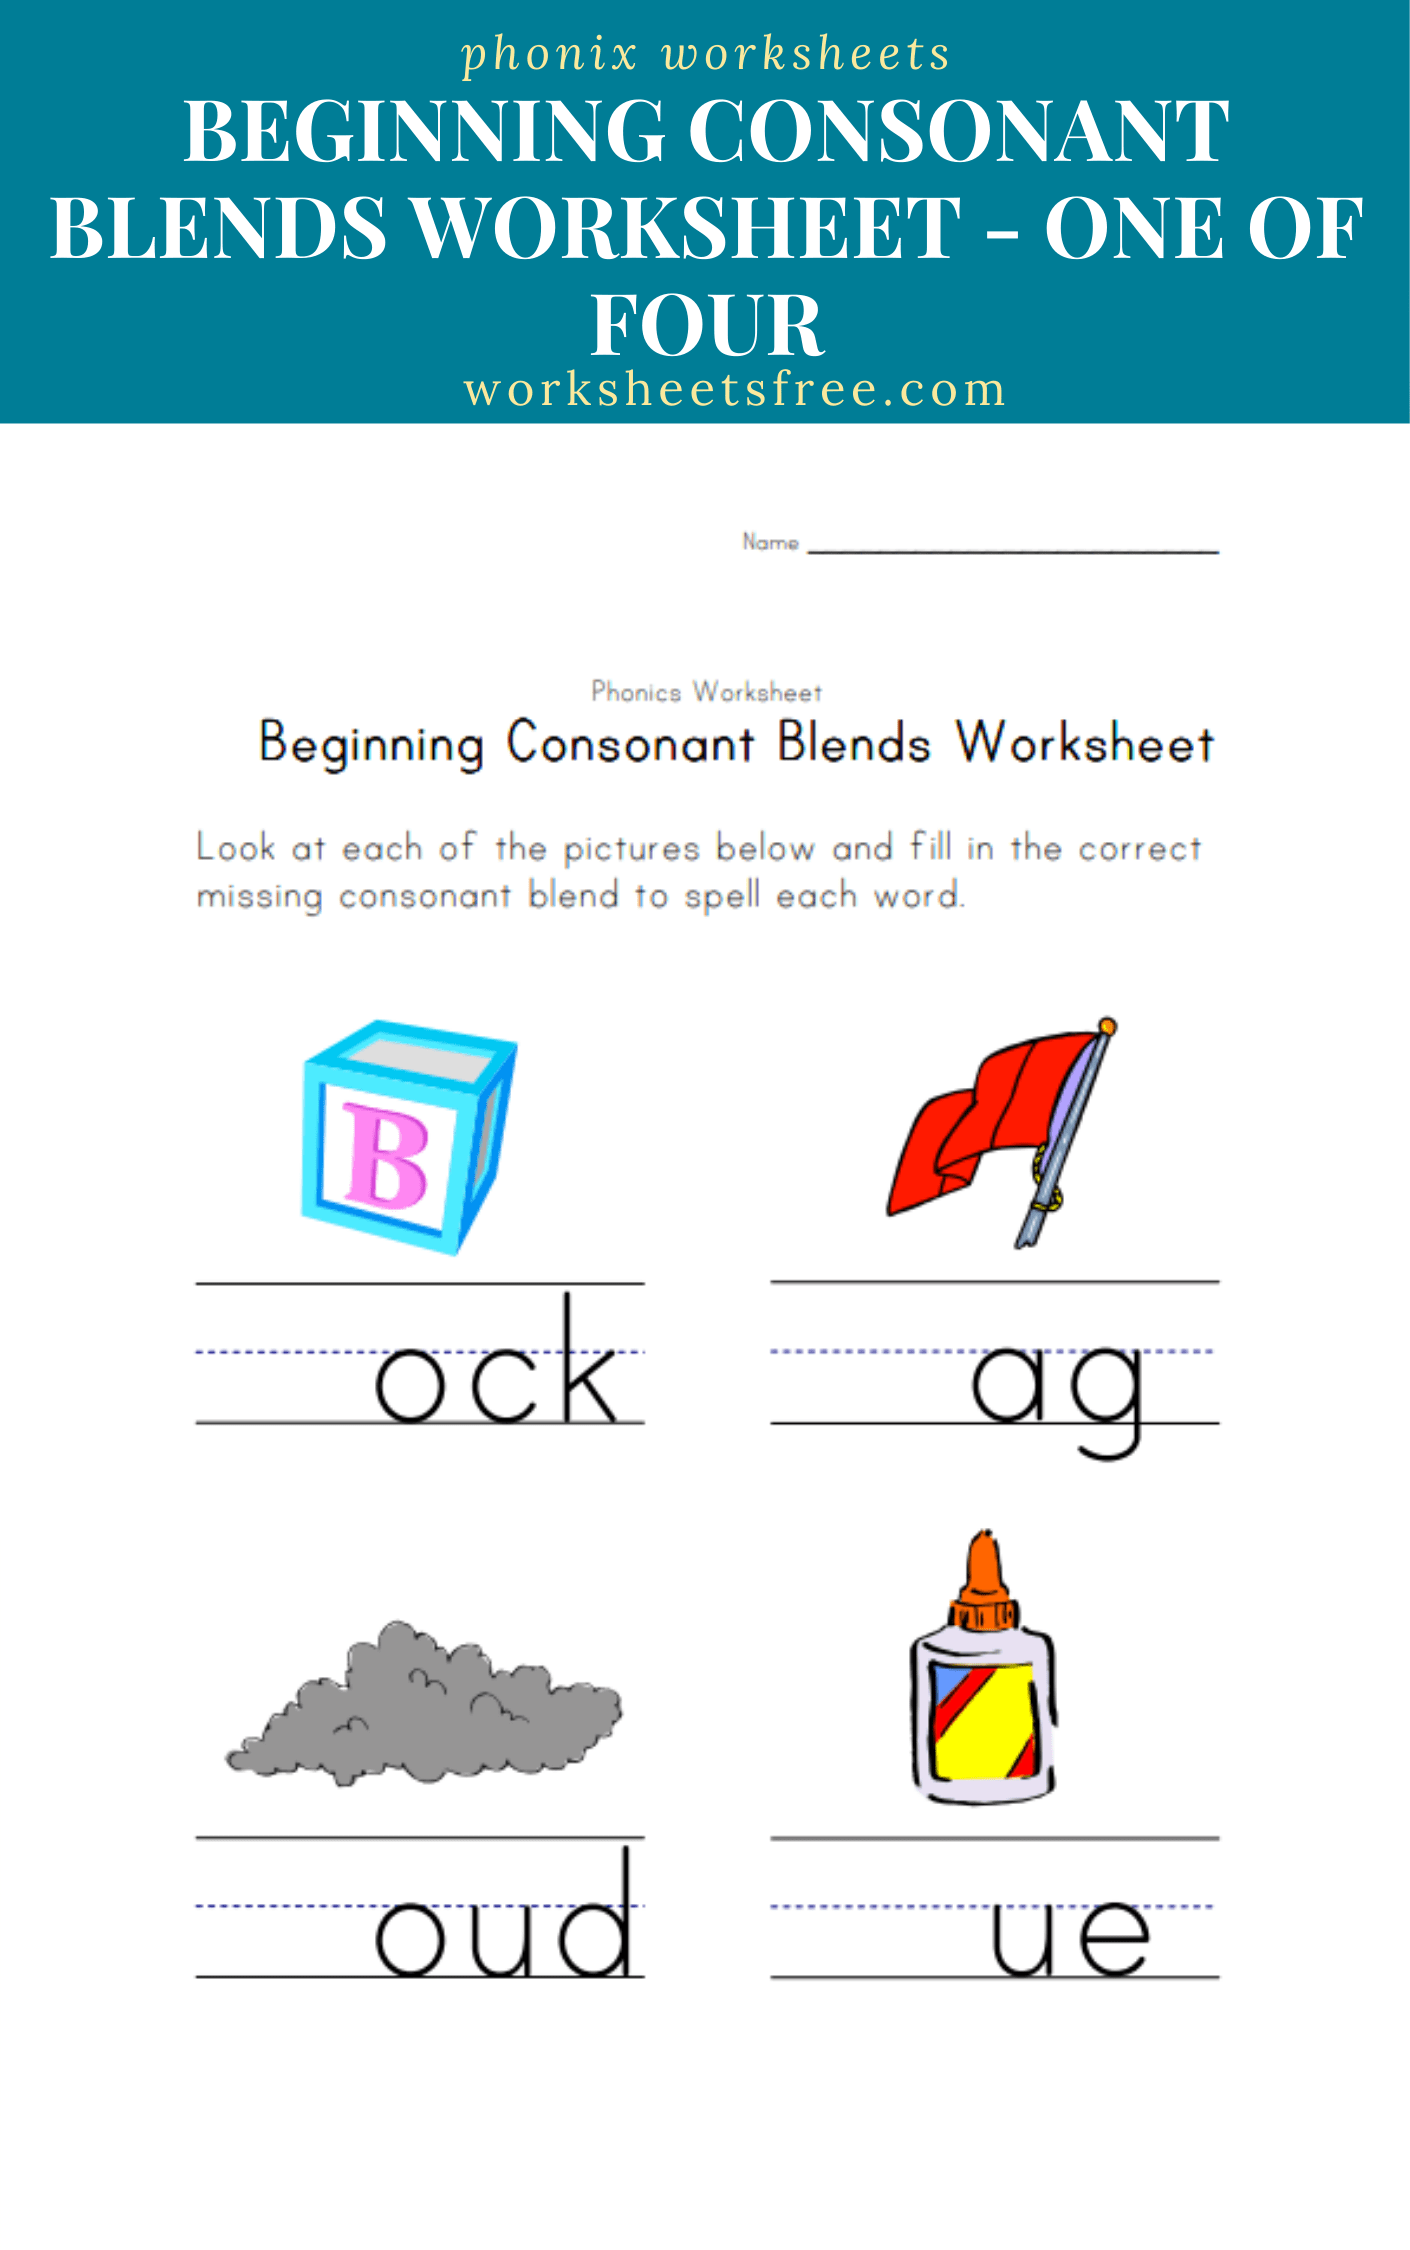 small resolution of Beginning-Consonant-Blends-Worksheet-One-of-Four   Worksheets Free